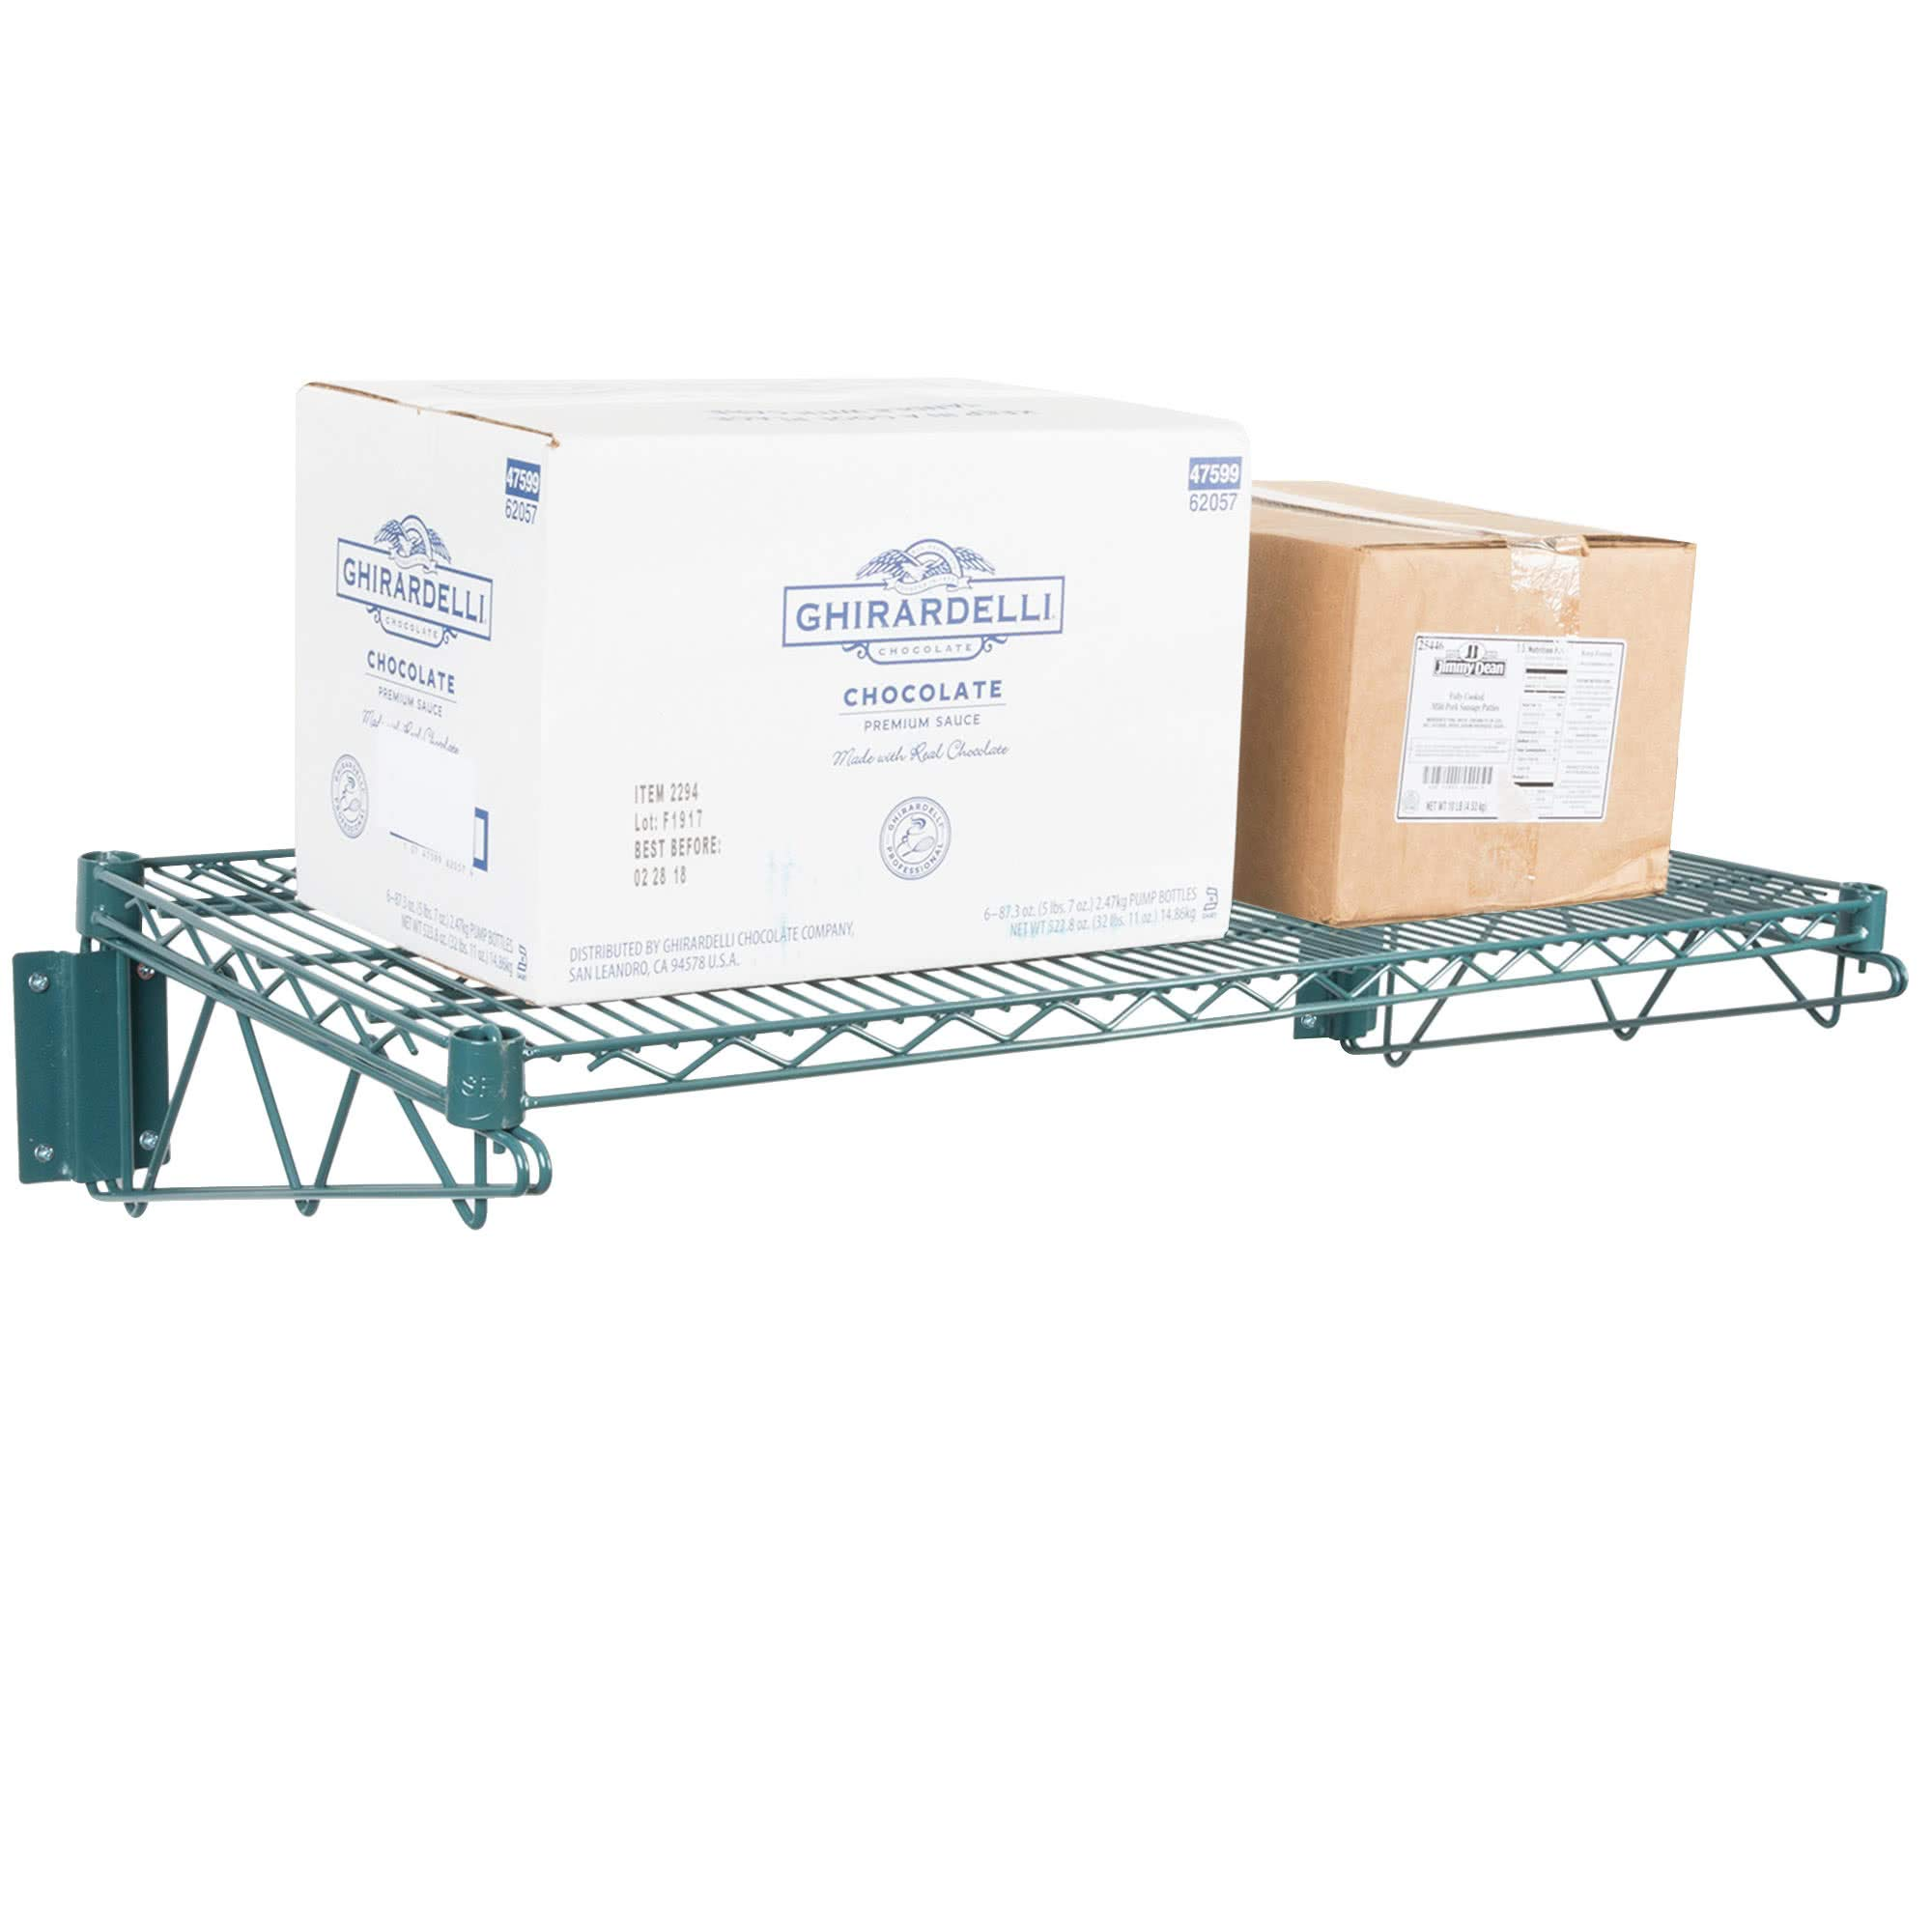 Green Epoxy Coated Wire Wall Mount Shelf 24 x 60 - NSF - Commercial by KPS (Image #4)